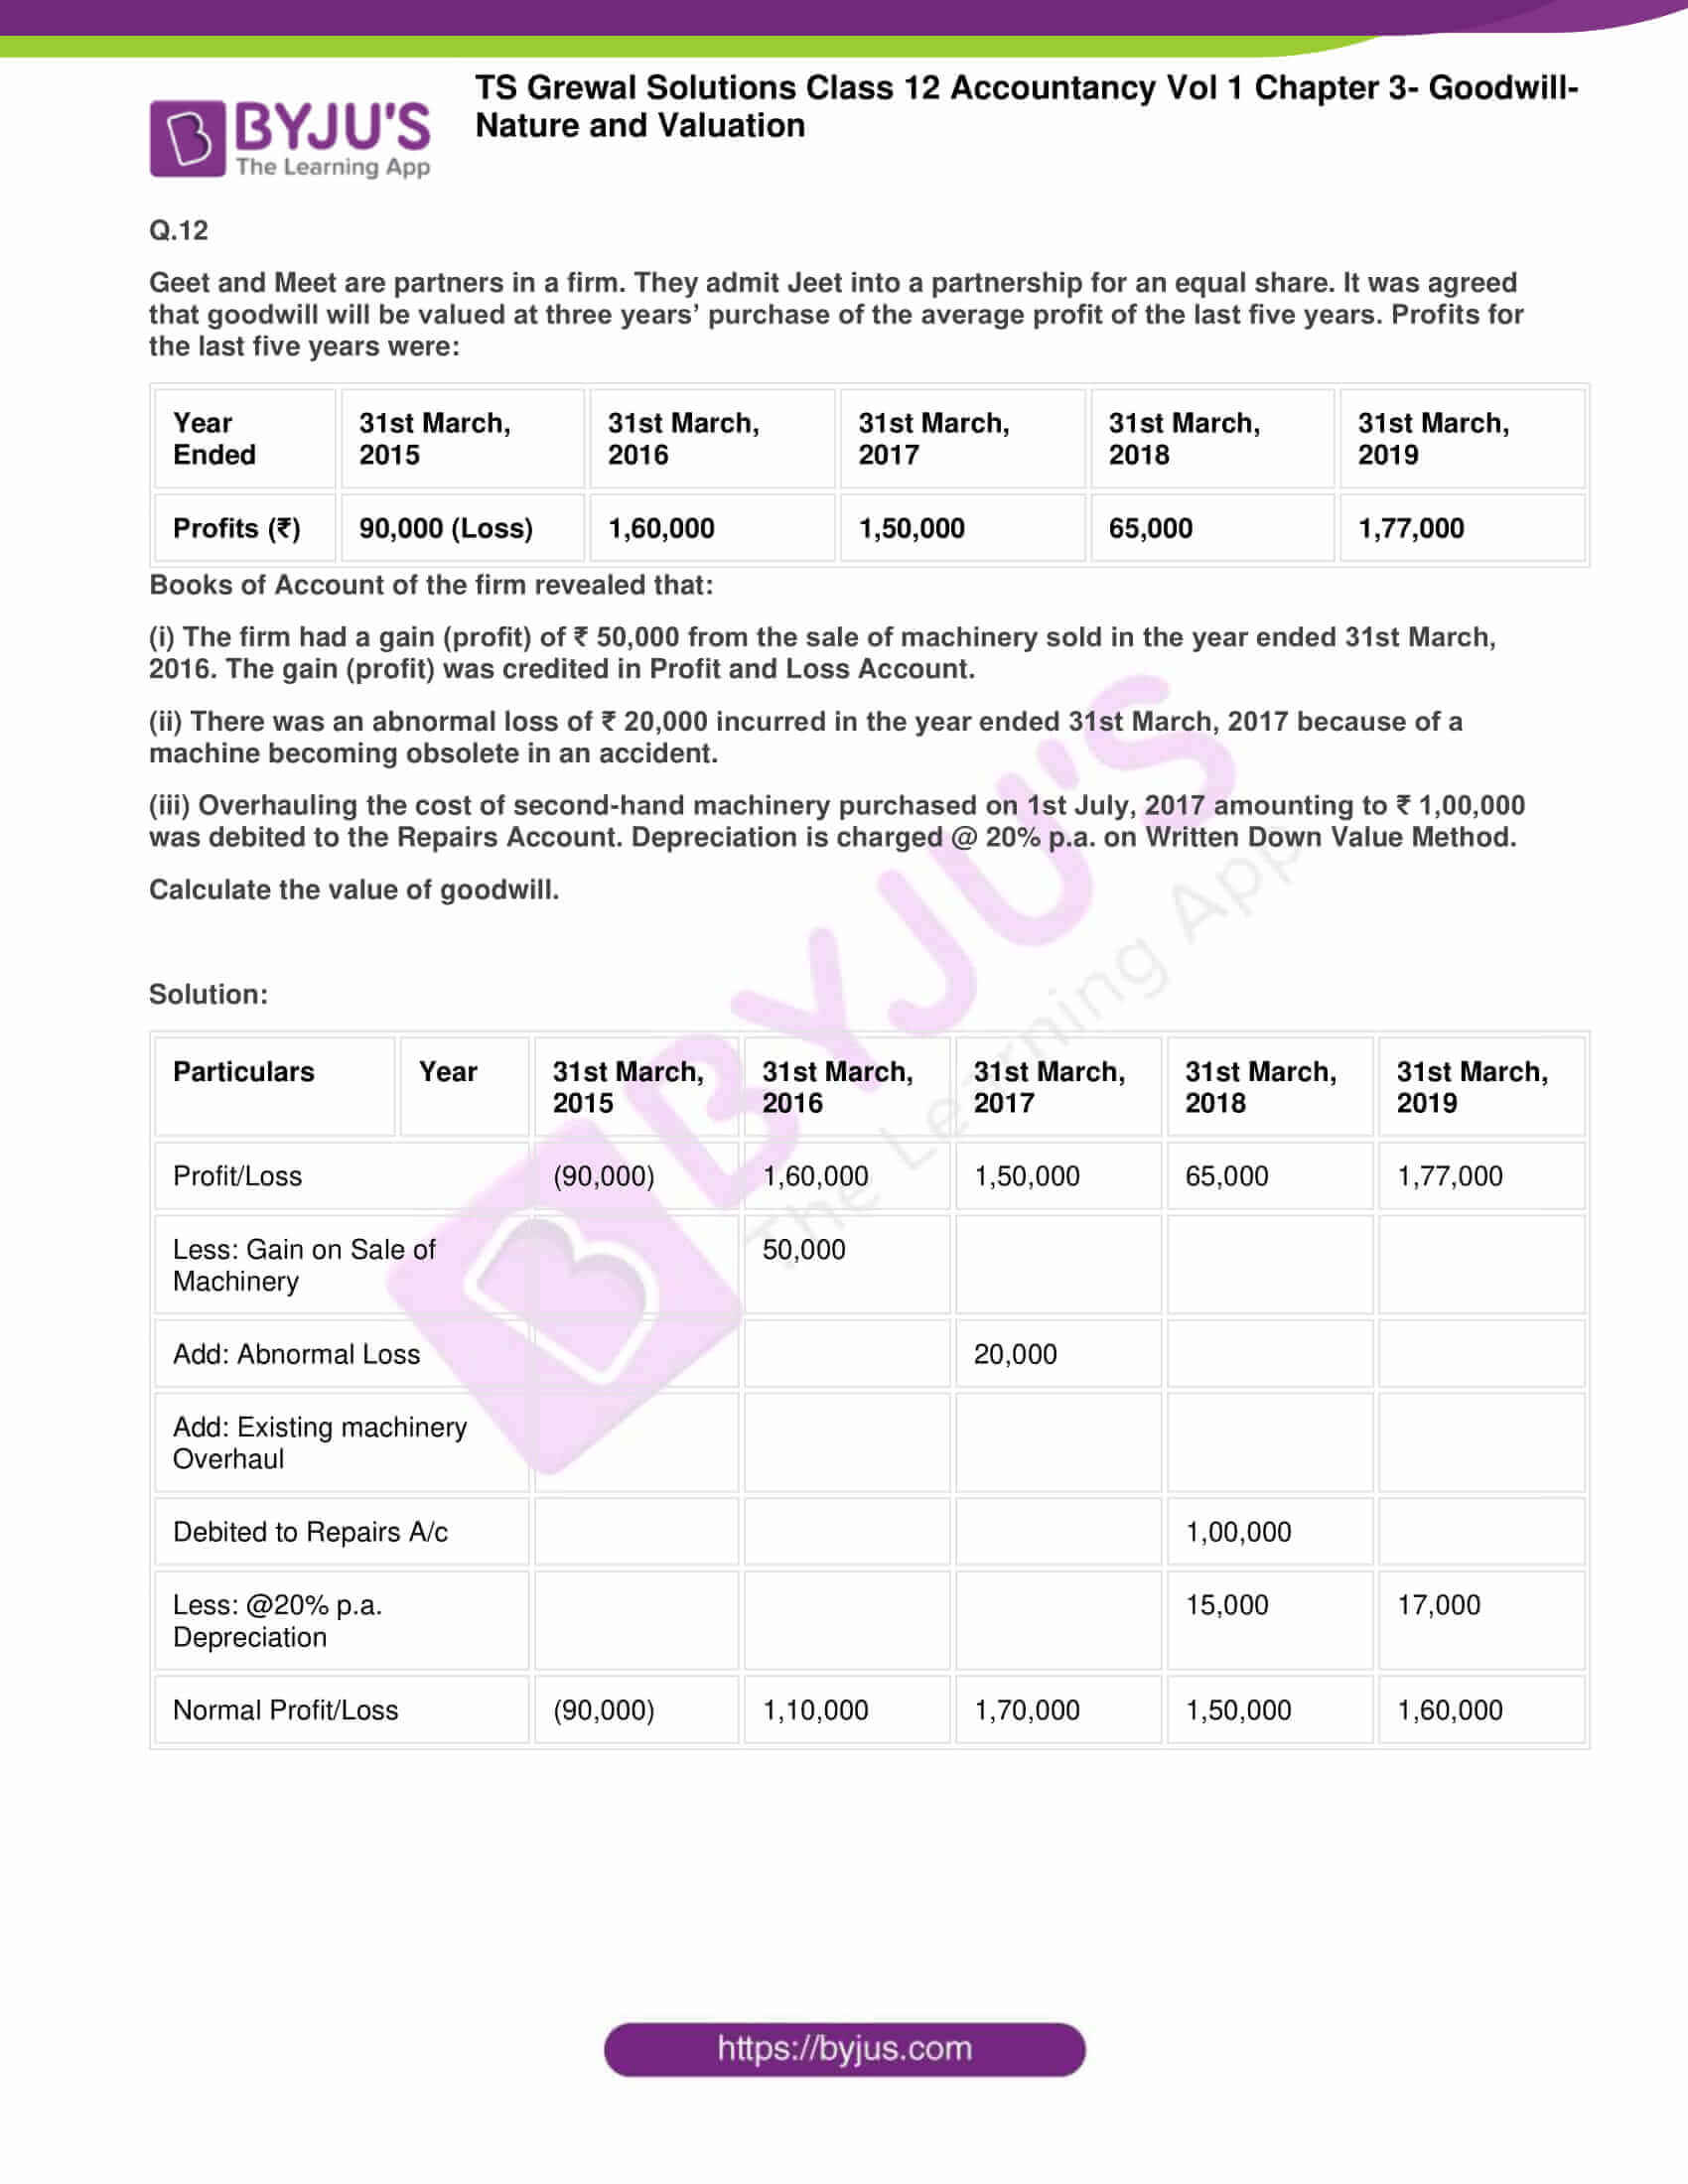 ts grewal solutions for class 12 accountancy vol 1 chapter 310